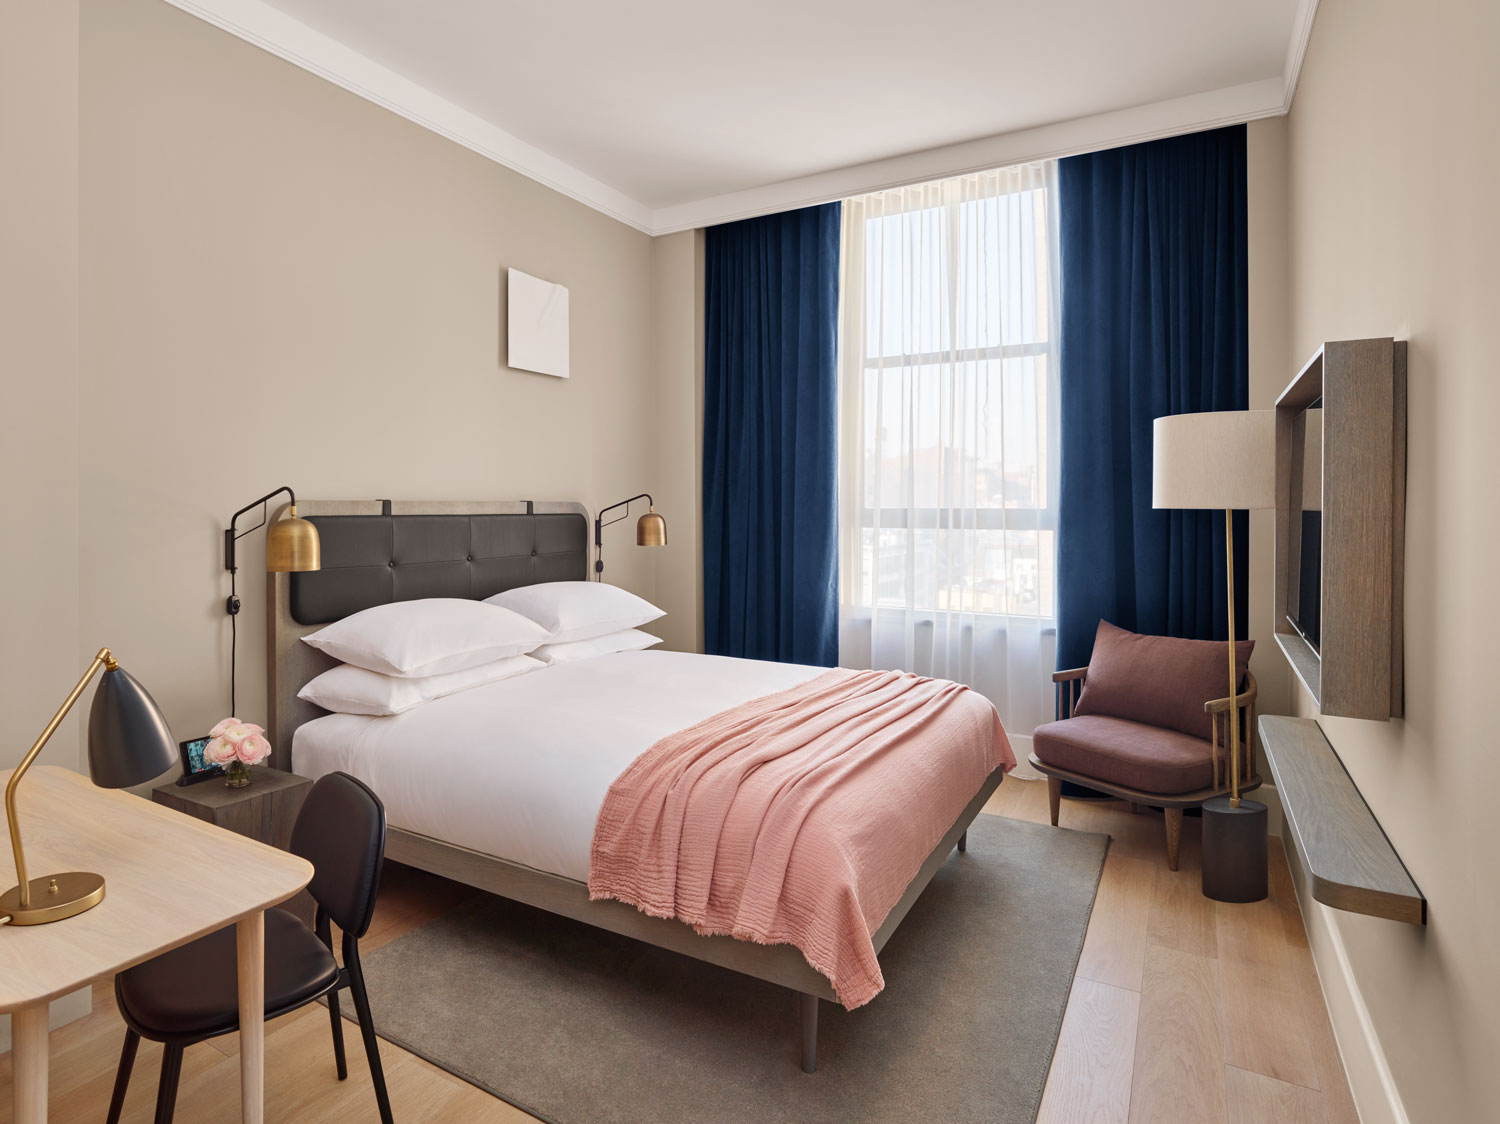 11 howard hotel opens in new york yellowtrace for Hotel room decor